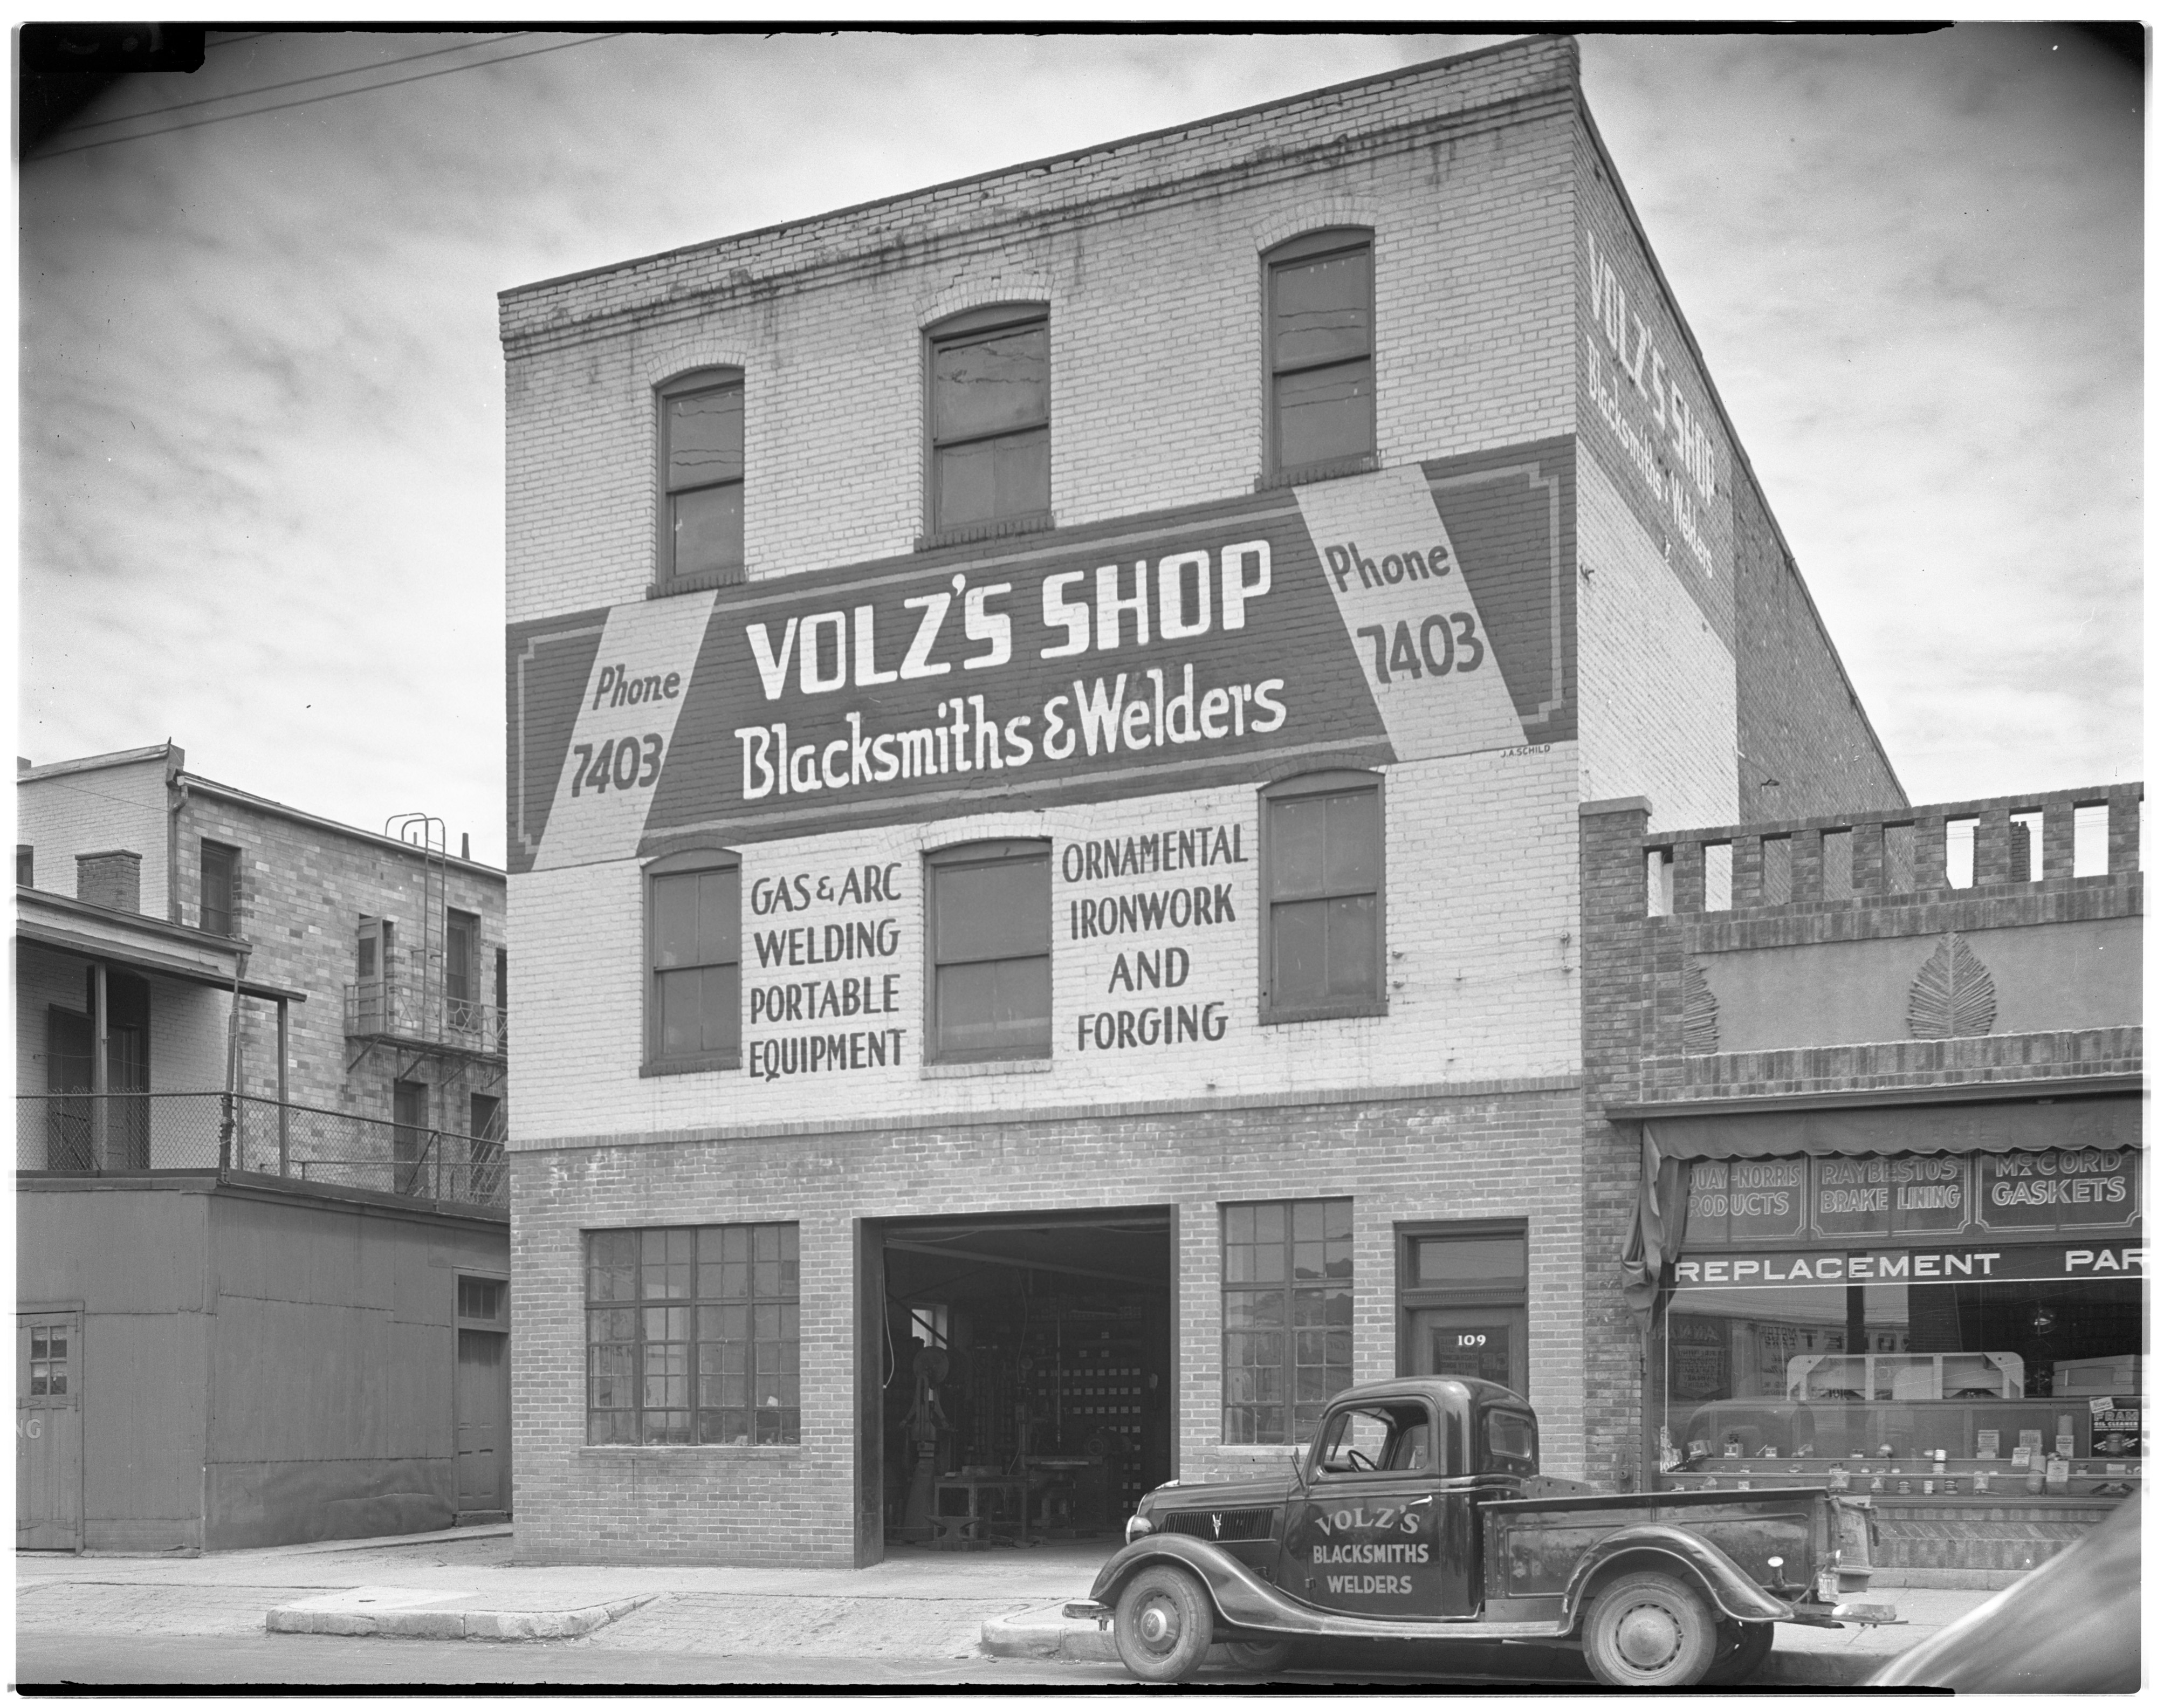 Volz's Shop, Blacksmiths & Welders image